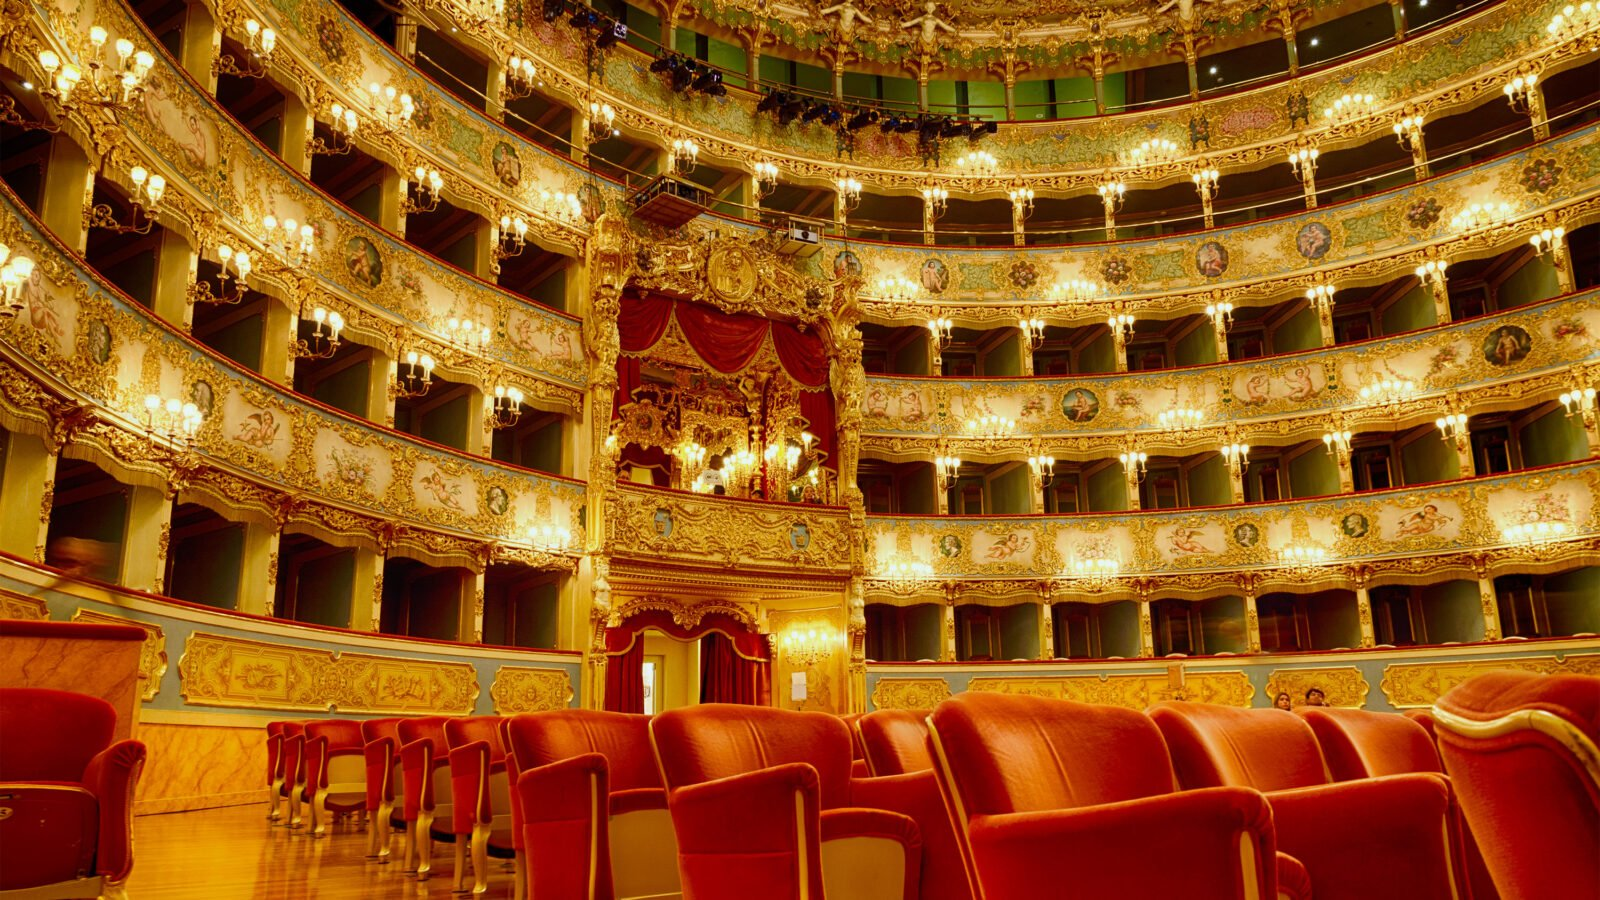 Arte Concert Opera De Paris Fire At Venice S La Fenice Brought Quickly Under Control 98 7wfmt